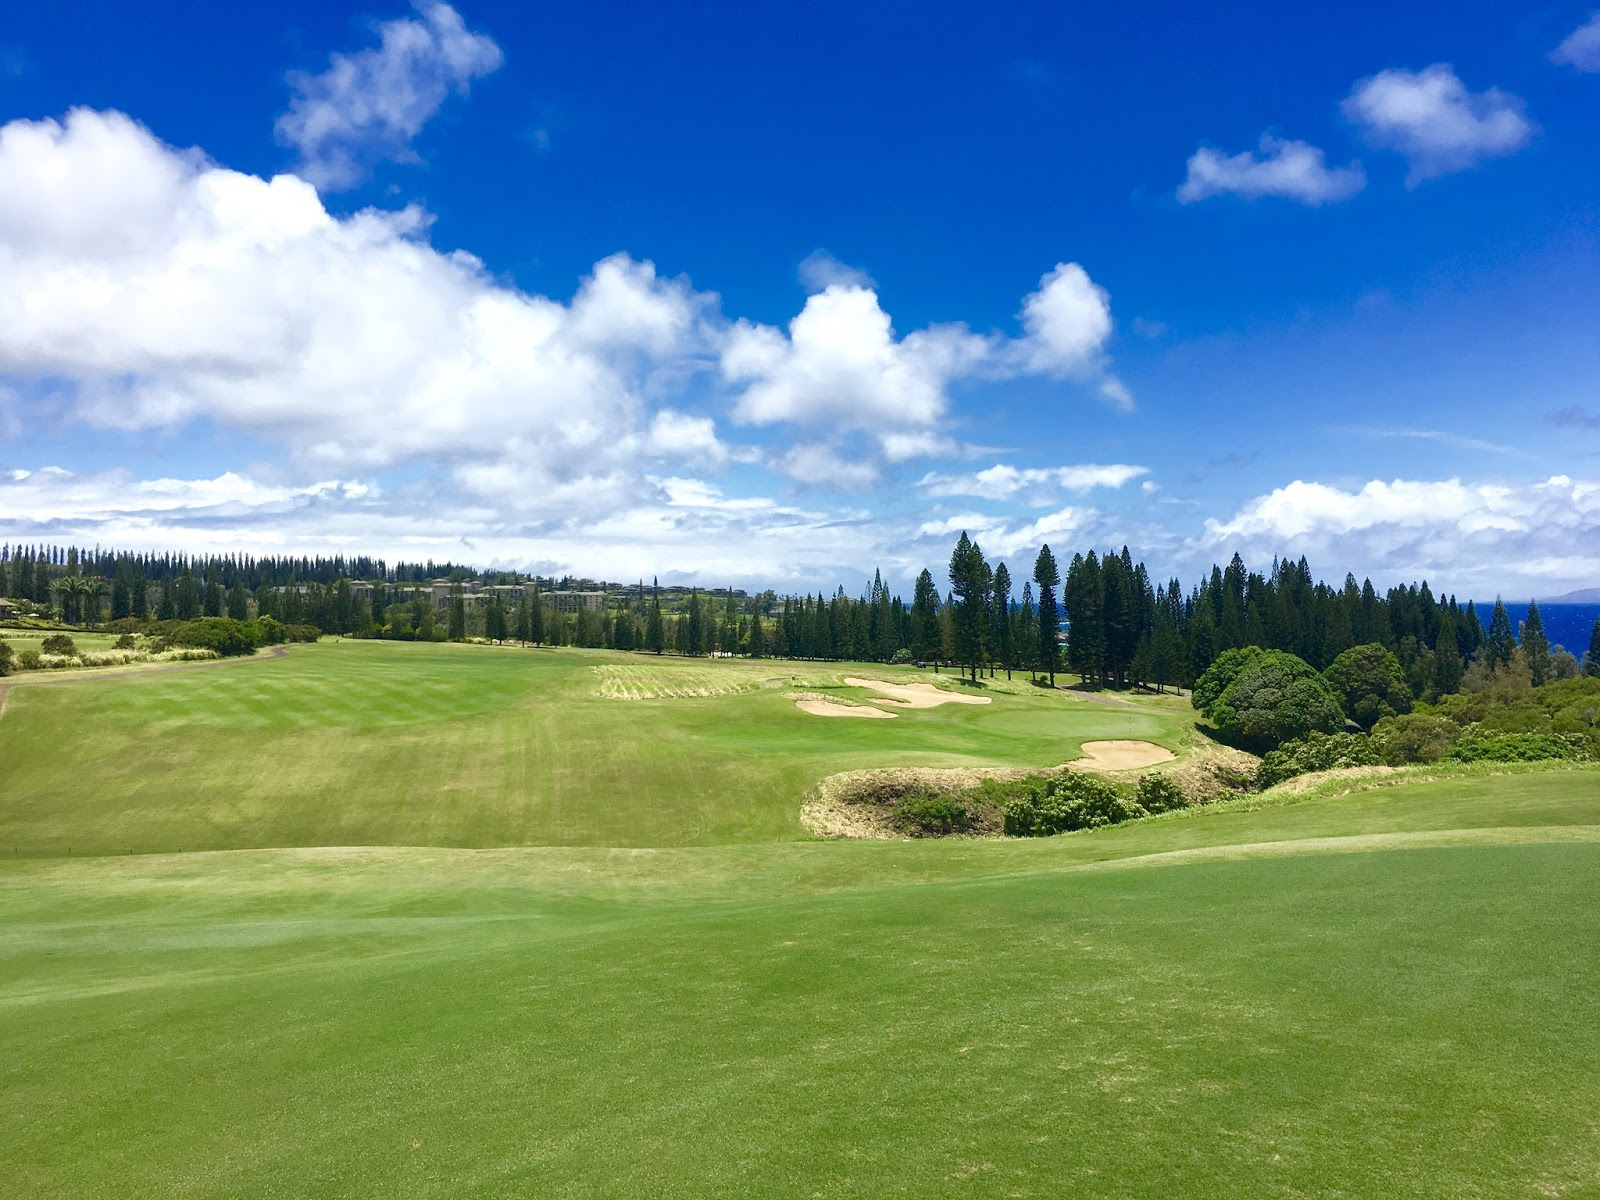 TASTE OF HAWAII: KAPALUA GOLF CLUB - THE PLANTATION COURSE